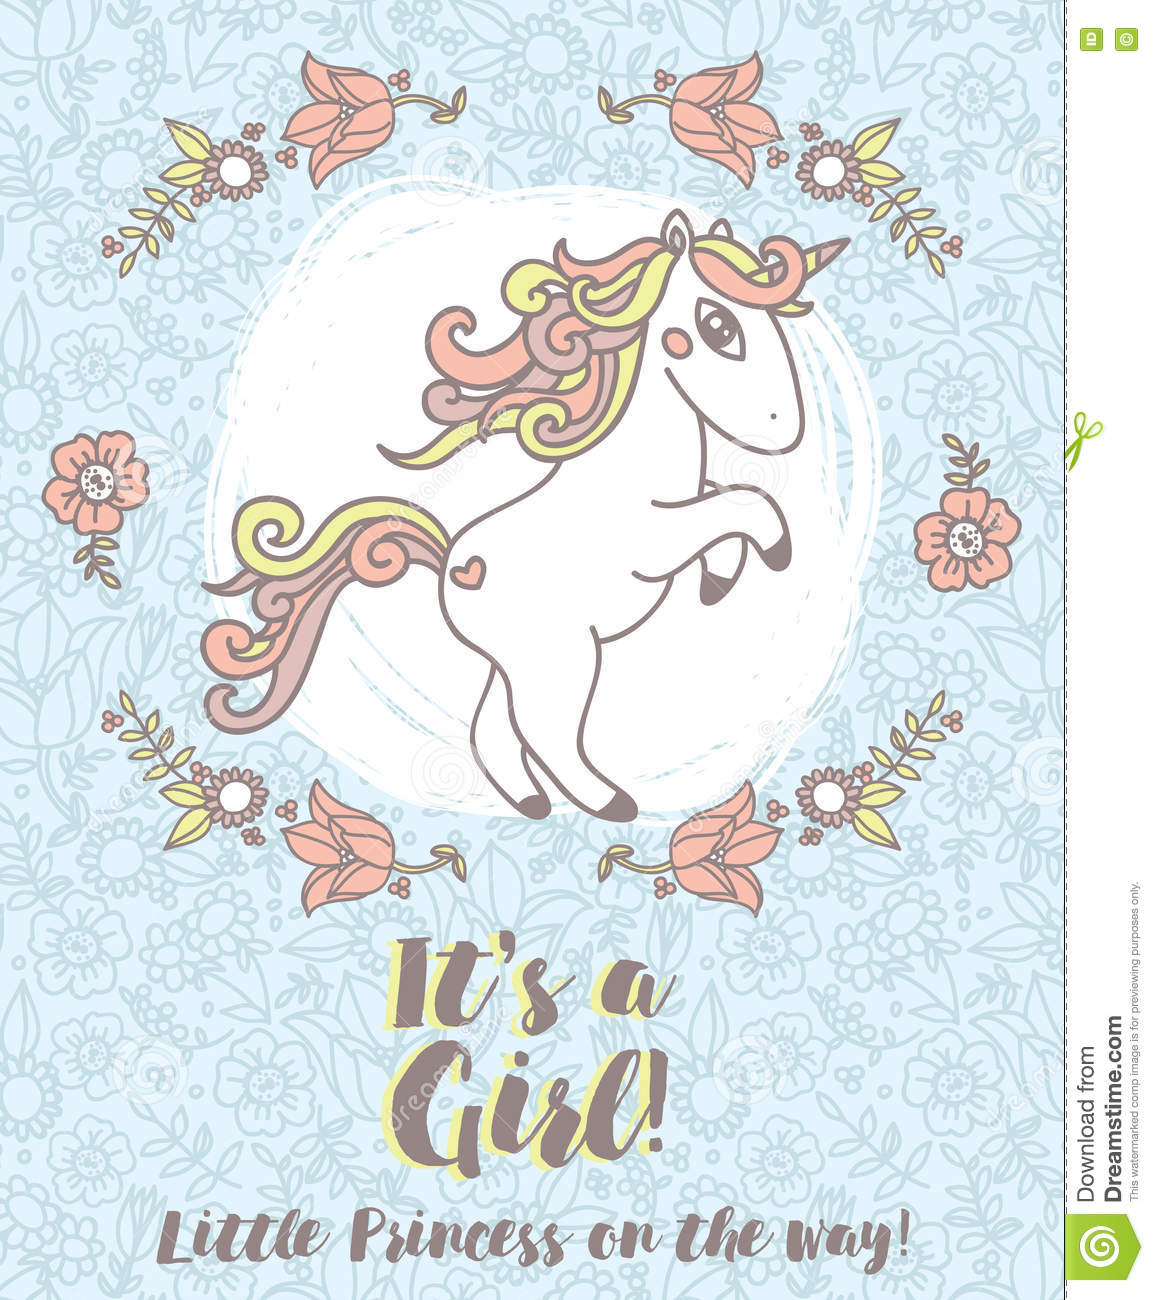 Invitations for baby shower with cute unicorn stock vector invitations for baby shower with cute unicorn filmwisefo